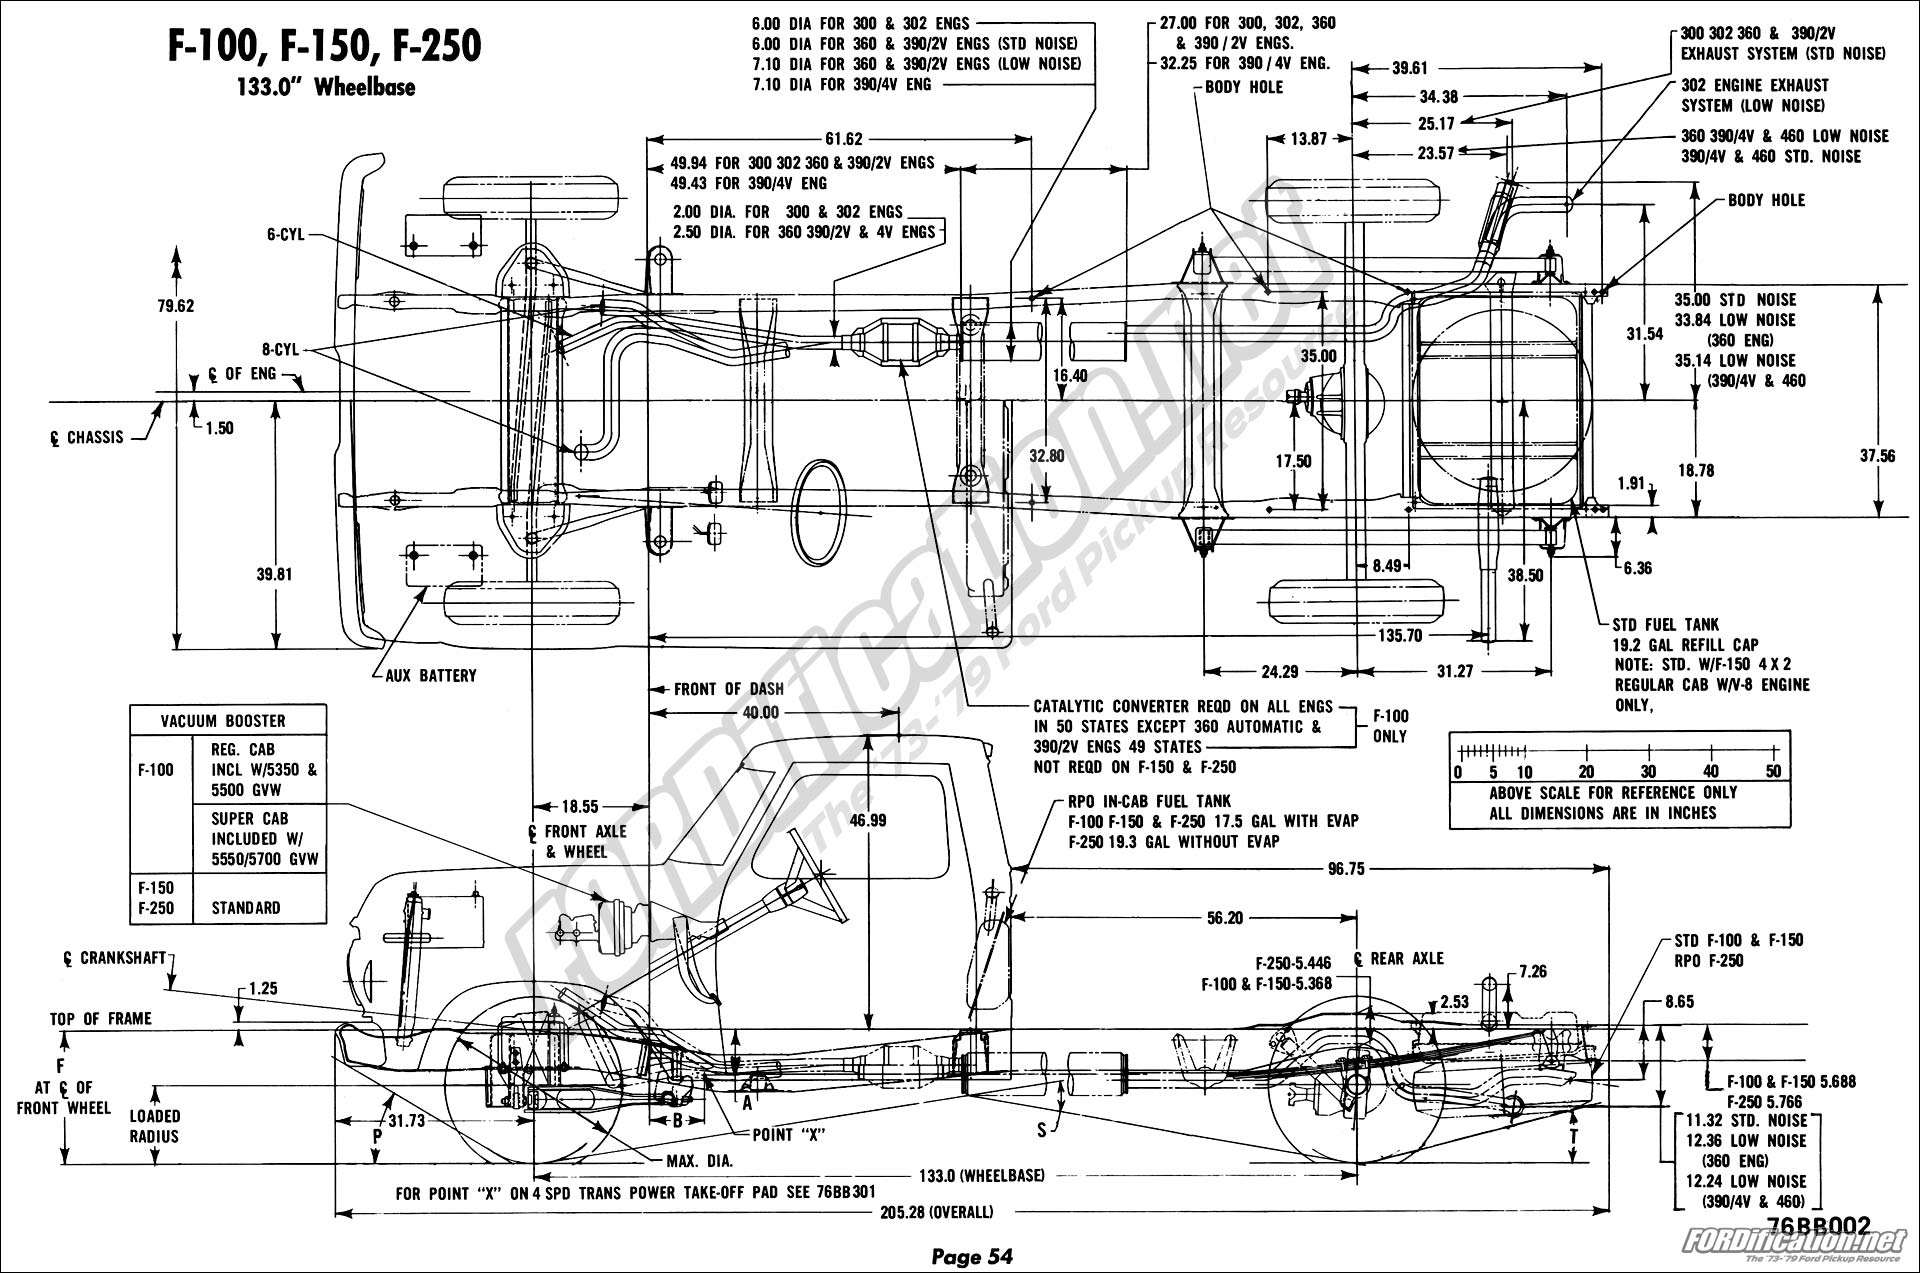 1333138 Re Building A Wrecked F 150 Bent Frame 5 likewise 1965 Dodge Coro  Wiring further Wiring 1972master in addition Engine Piston Art furthermore 612992 Help Reassembling 65 Wood Grain Steering Wheel Assembly. on 1956 chevy truck wiring diagram